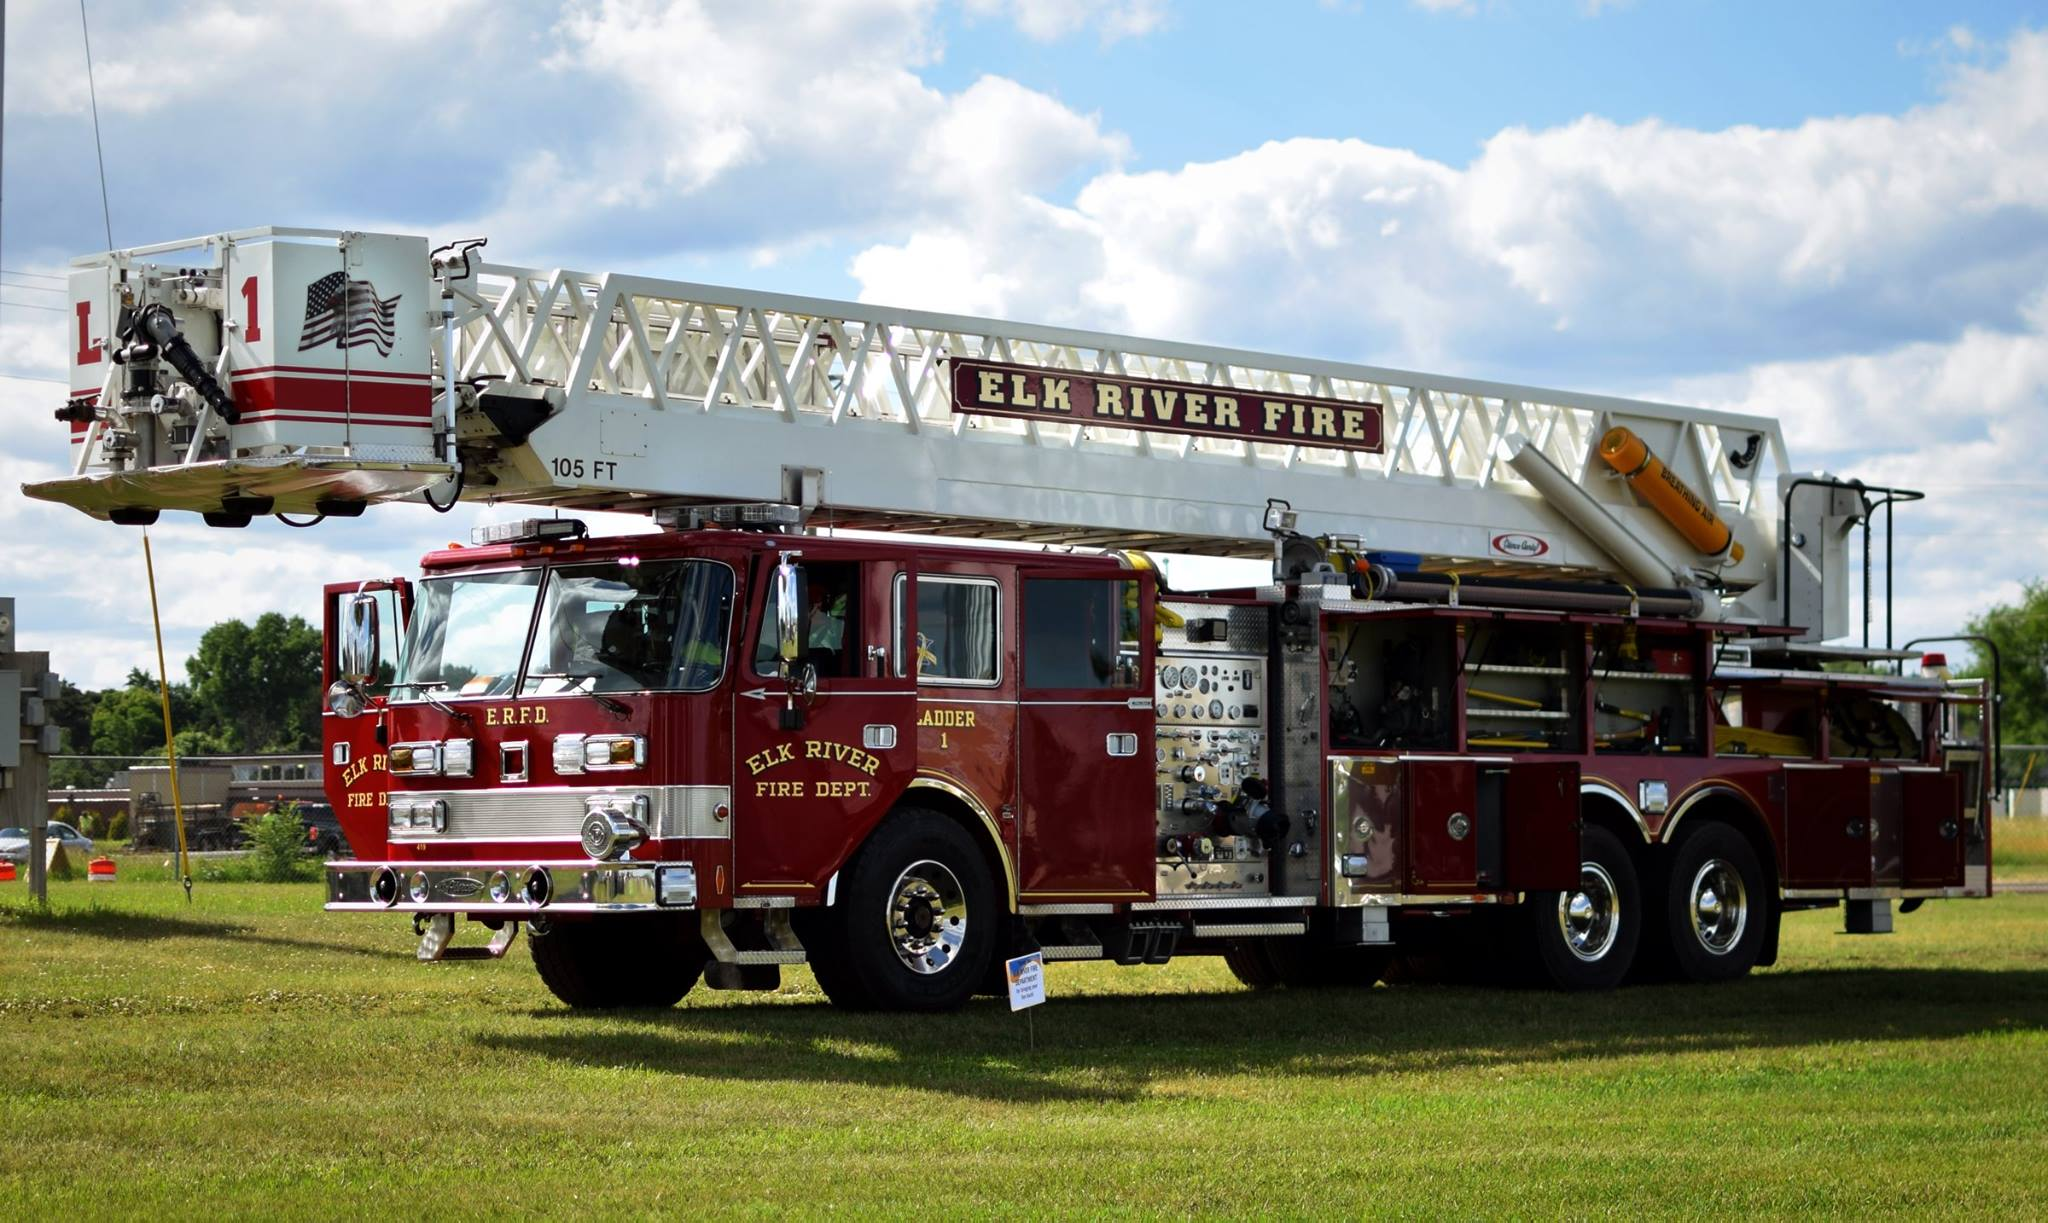 United Way visit - Ladder Truck